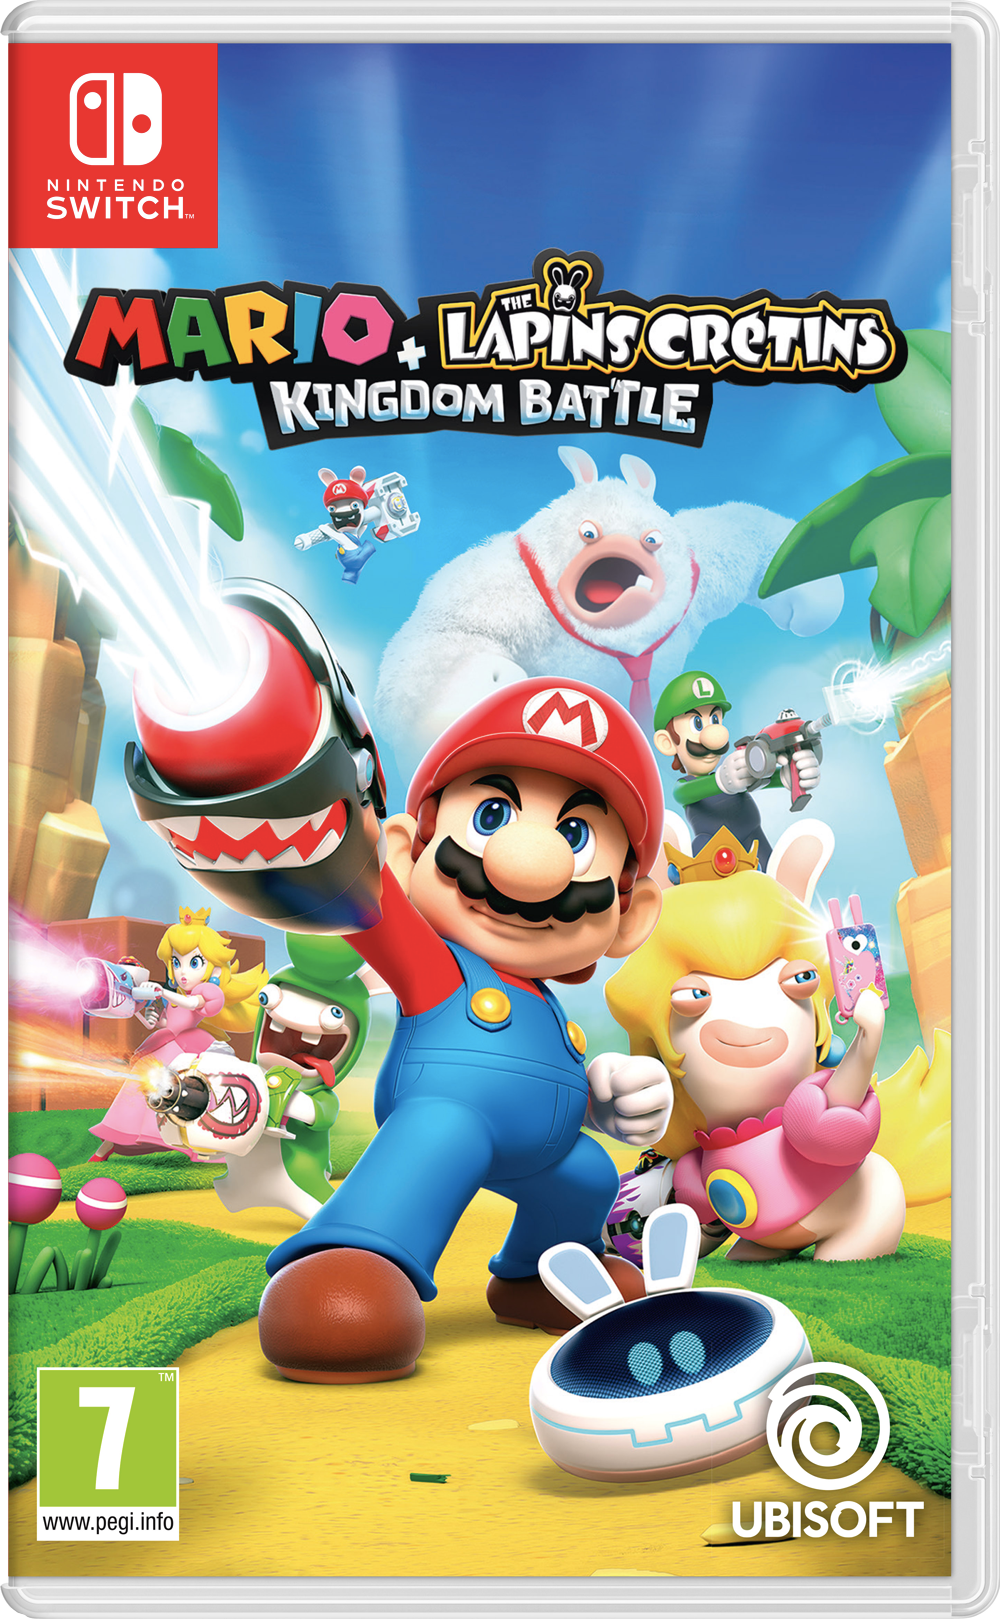 Mario + Les Lapins Crétins Kingdom Battle